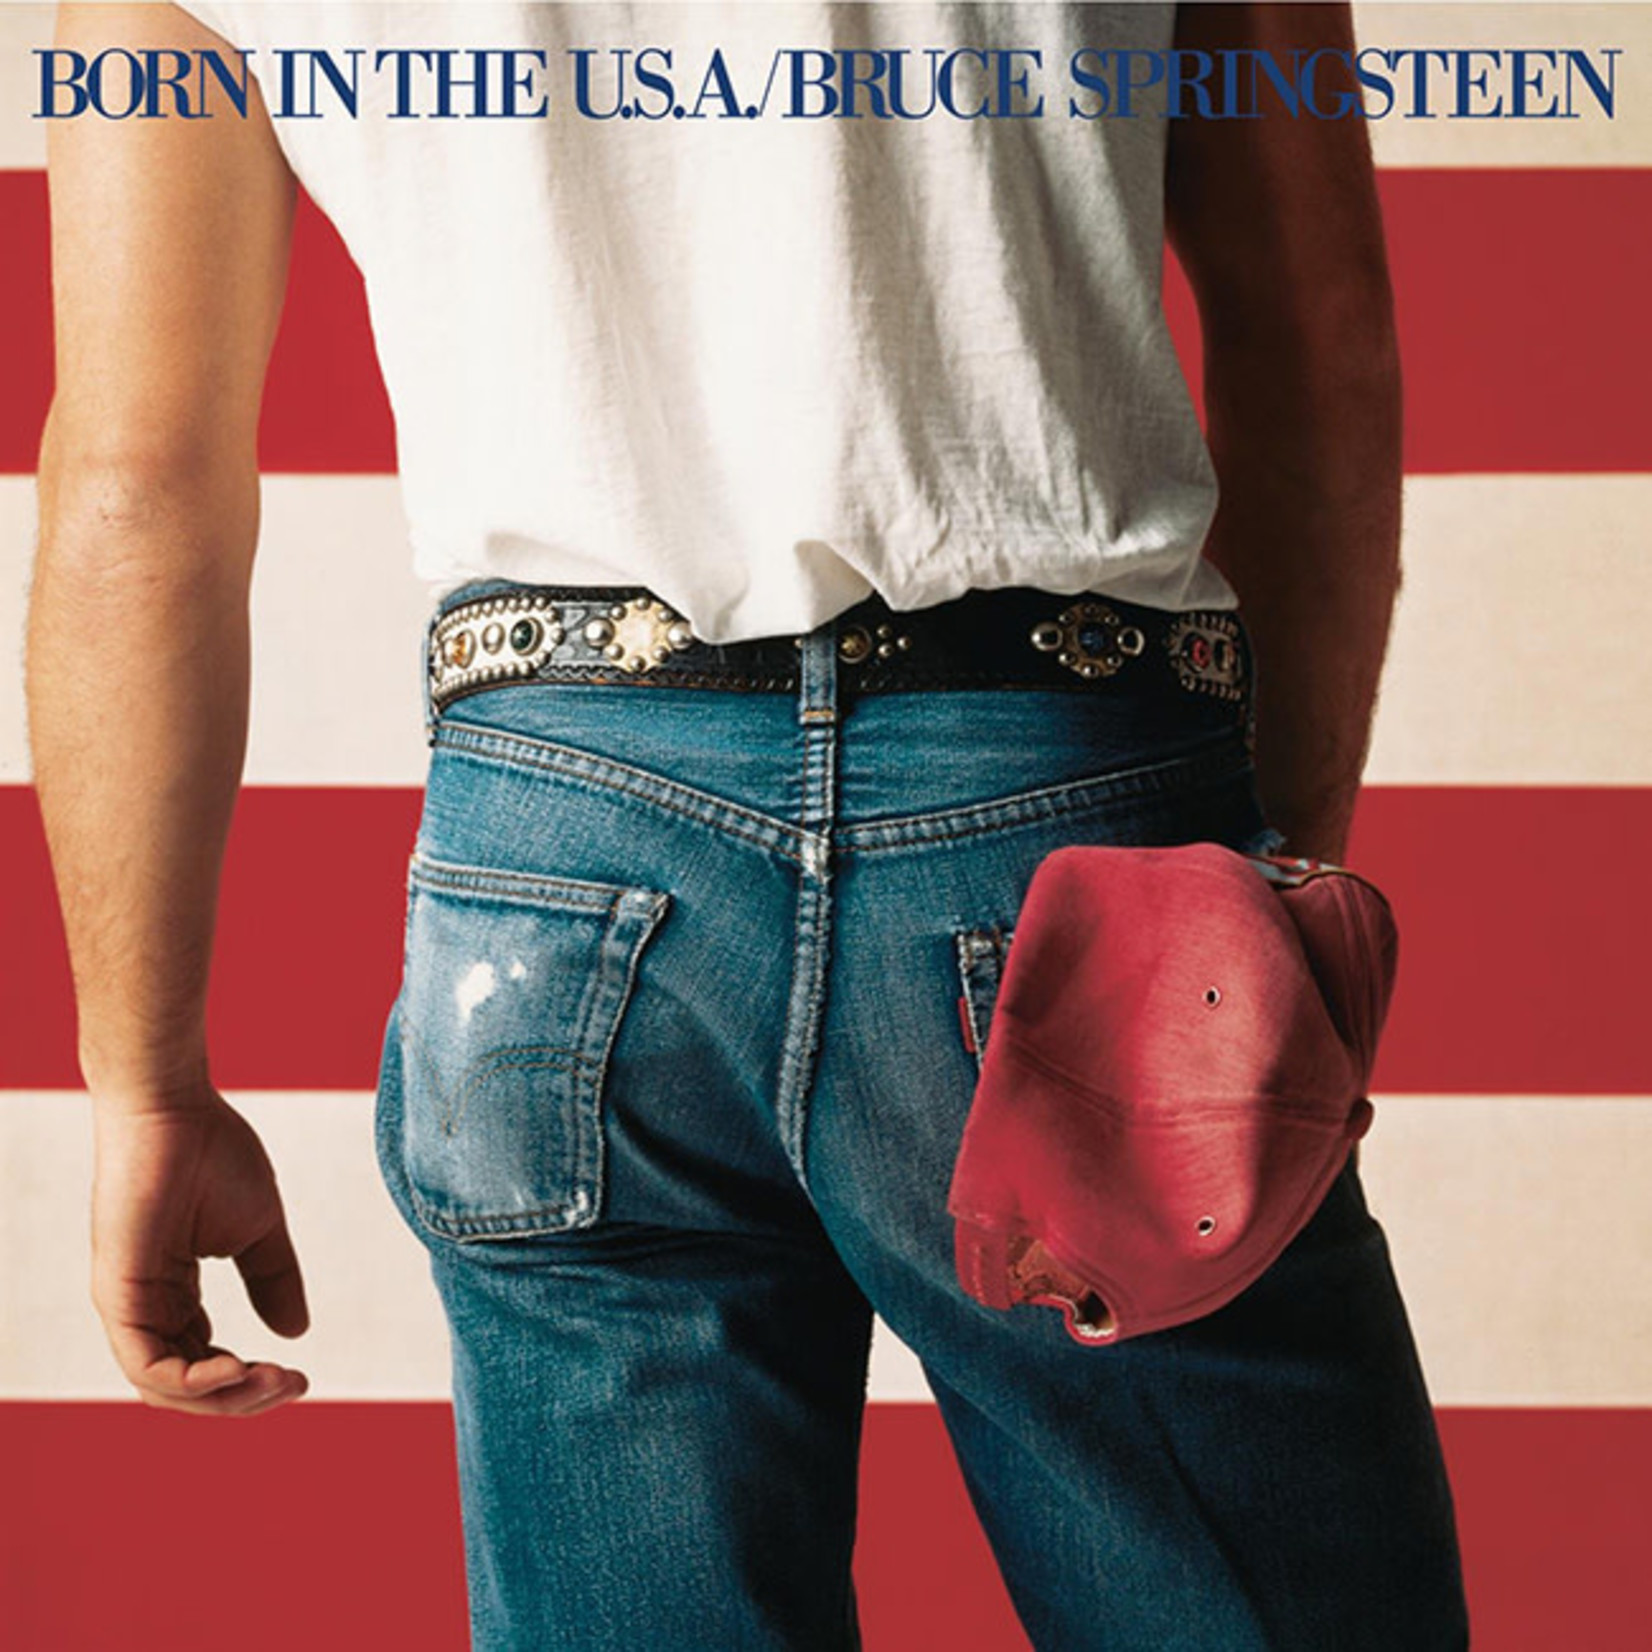 [New] Springsteen, Bruce: Born In The U.S.A.